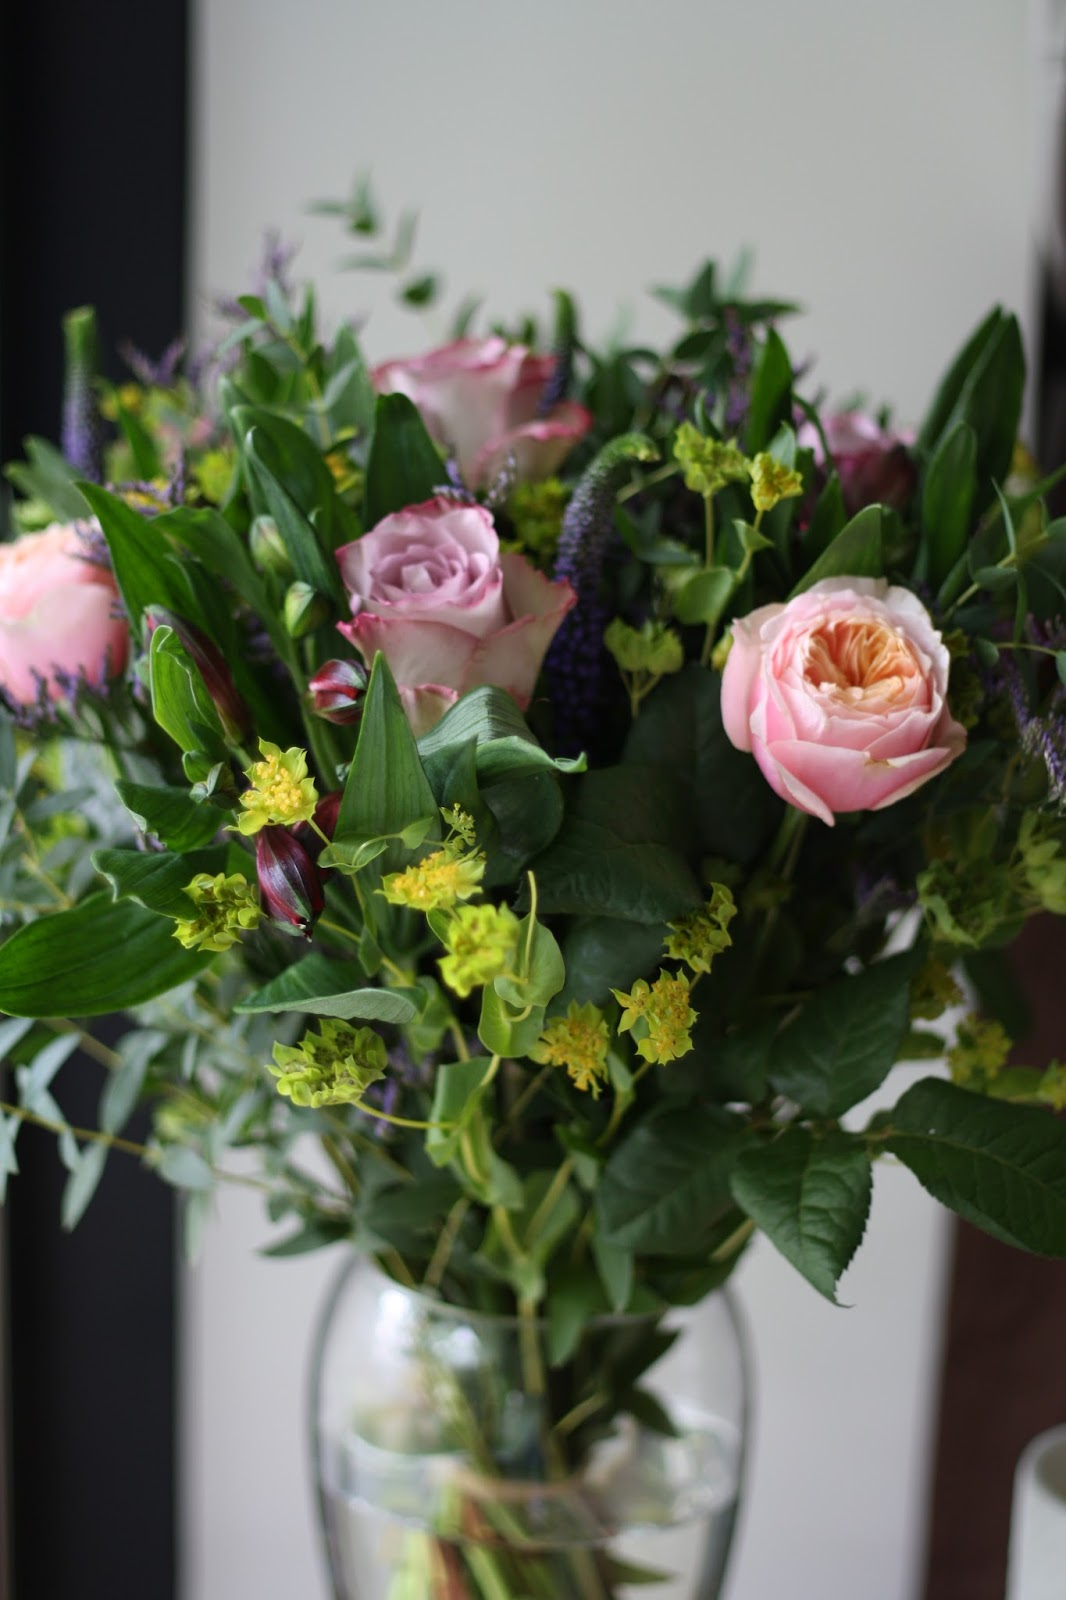 How to take care of roses -  Family Who Prefer Plants Over Bouquets They Have Them Too I Know My Nan Would Probably Prefer A Good Plant That She Can Take Care Of And Watch Grow